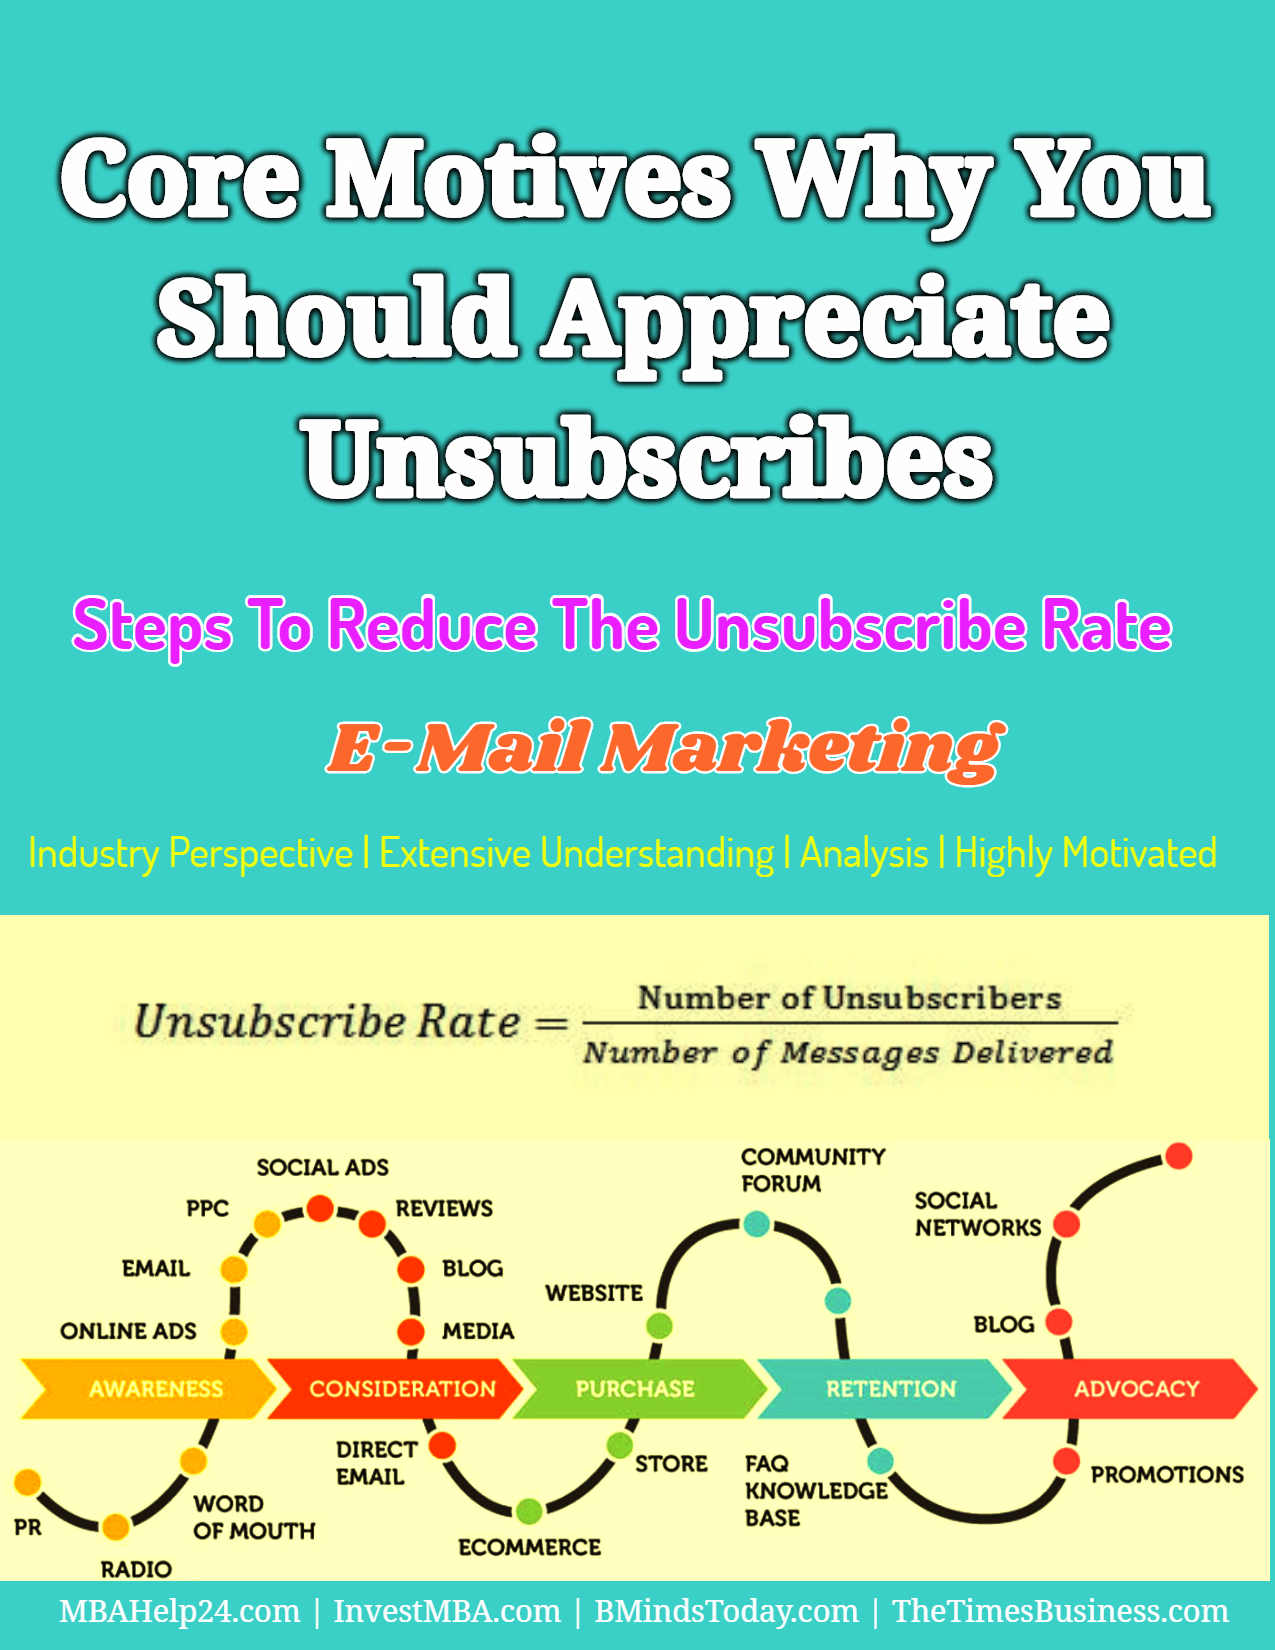 Core Motives Why You Should Appreciate Unsubscribes | Steps To Reduce The Unsubscribe Rate unsubscribe Motives Why You Should Appreciate Unsubscribes | Steps To Reduce Unsubscribe Rate Core Motives Why You Should Appreciate Unsubscribes Steps To Reduce The Unsubscribe Rate